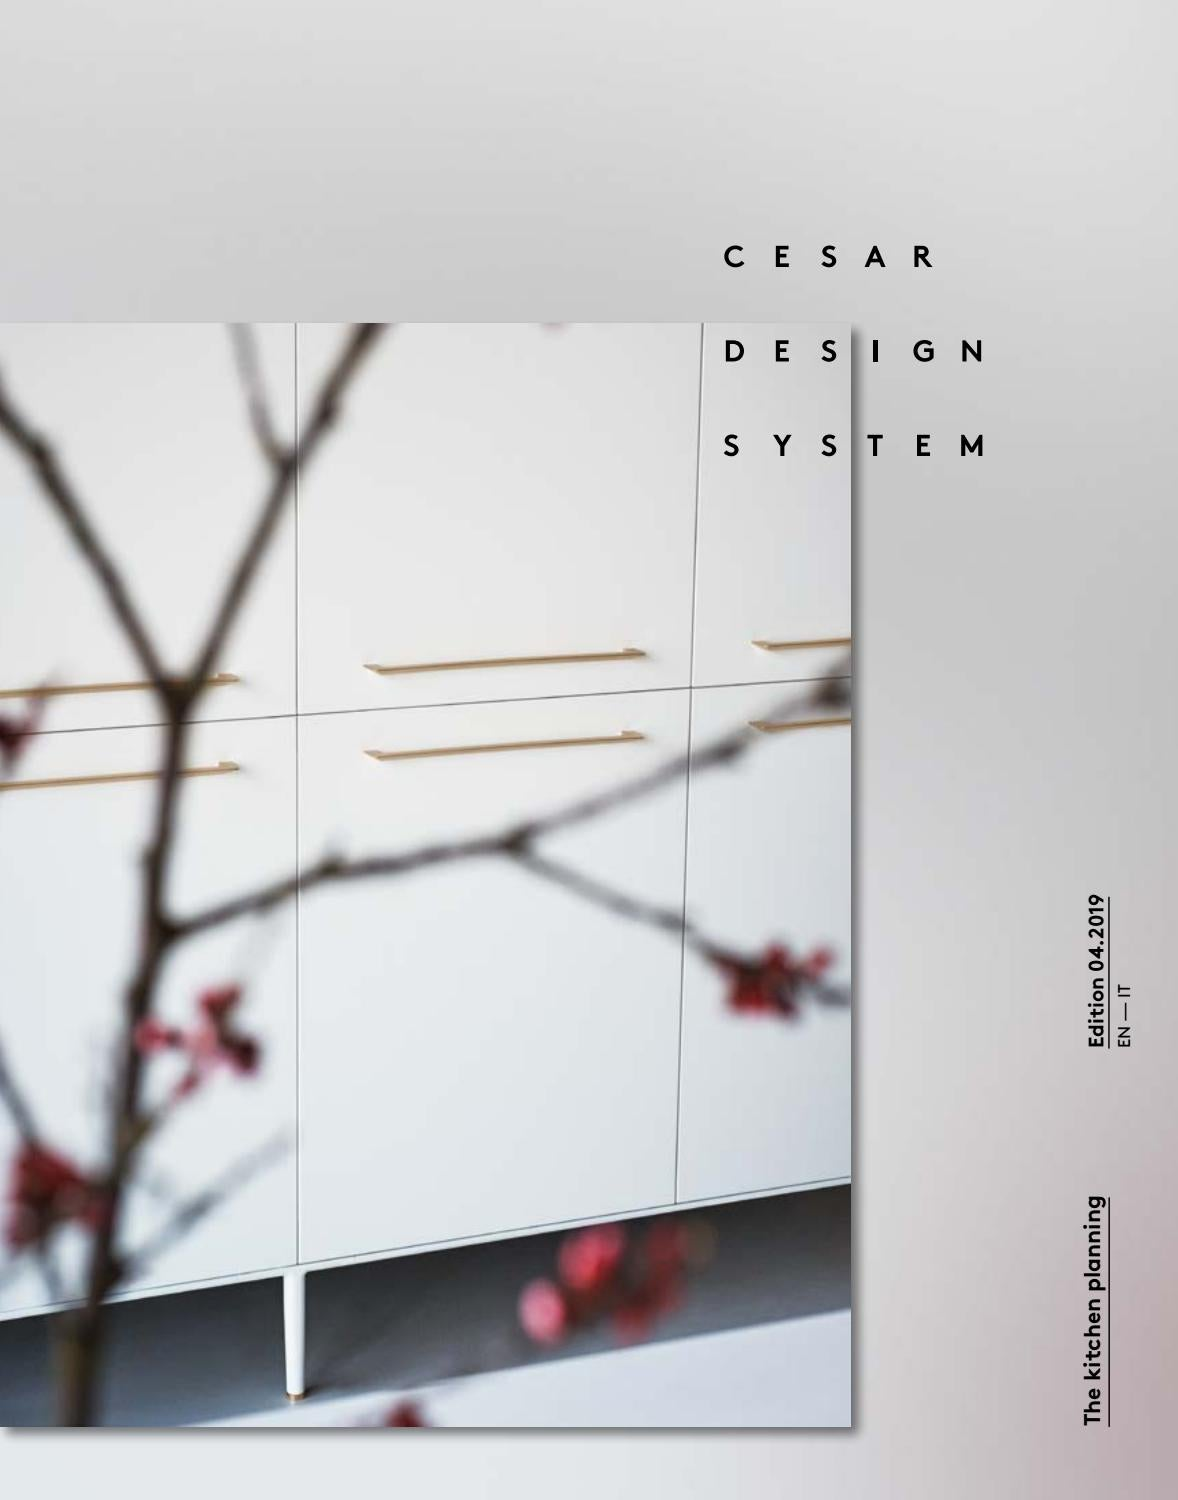 Cesar Arredamenti Spa Pramaggiore cesar design system - the kitchen planning (en - it) by